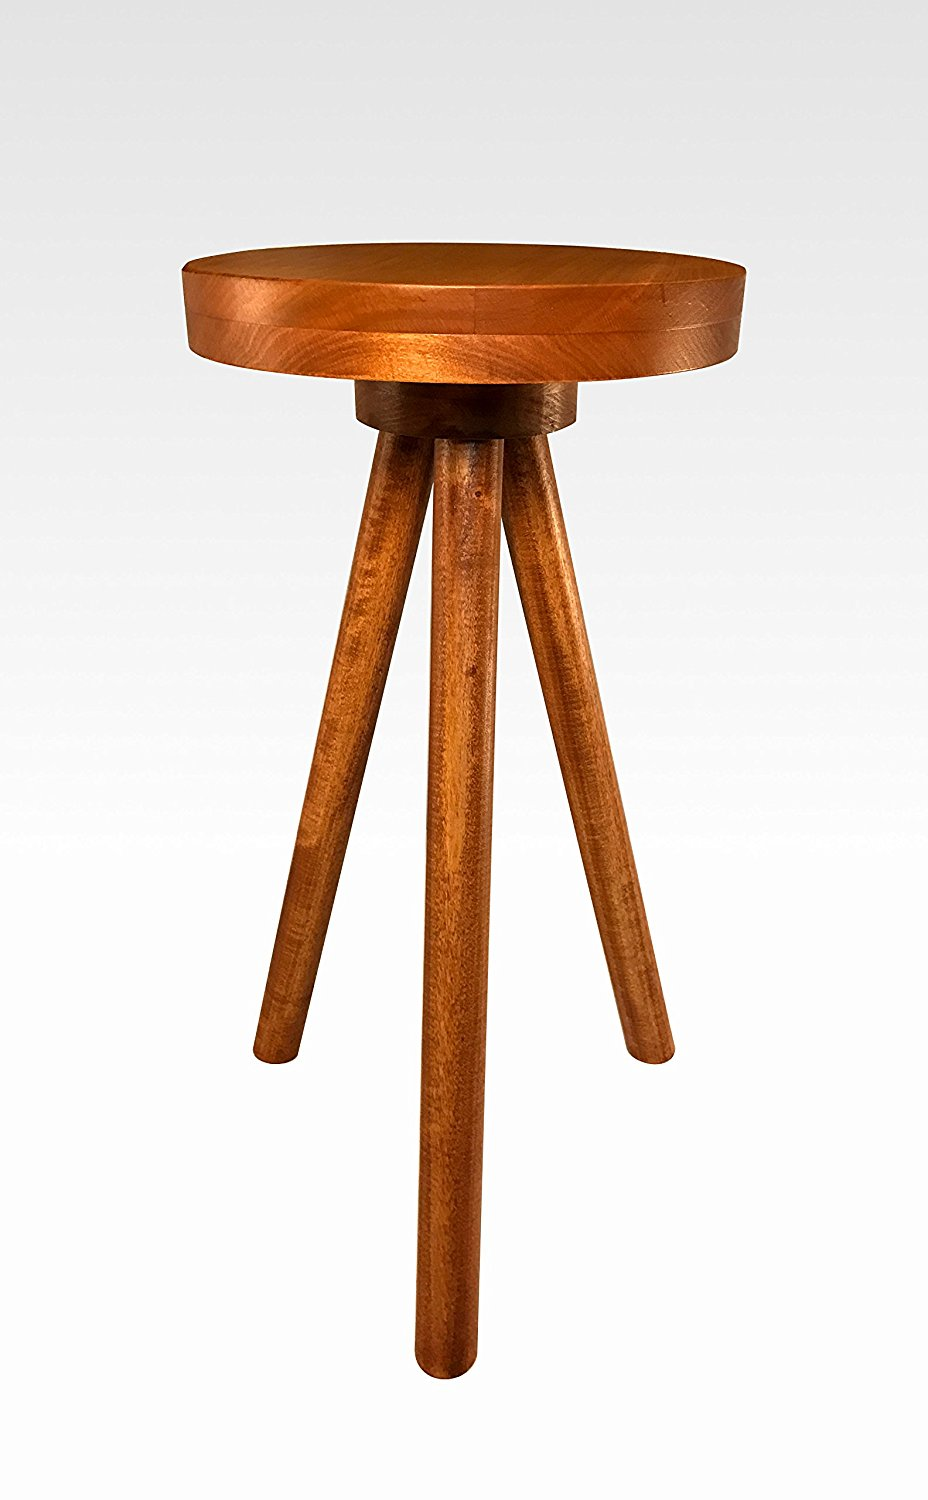 Modern Side Table in Cherry by Candlewood Furniture End Table Bar Stool, Bedside Table, Nightstand, Wood, Wooden, Three Legged Table